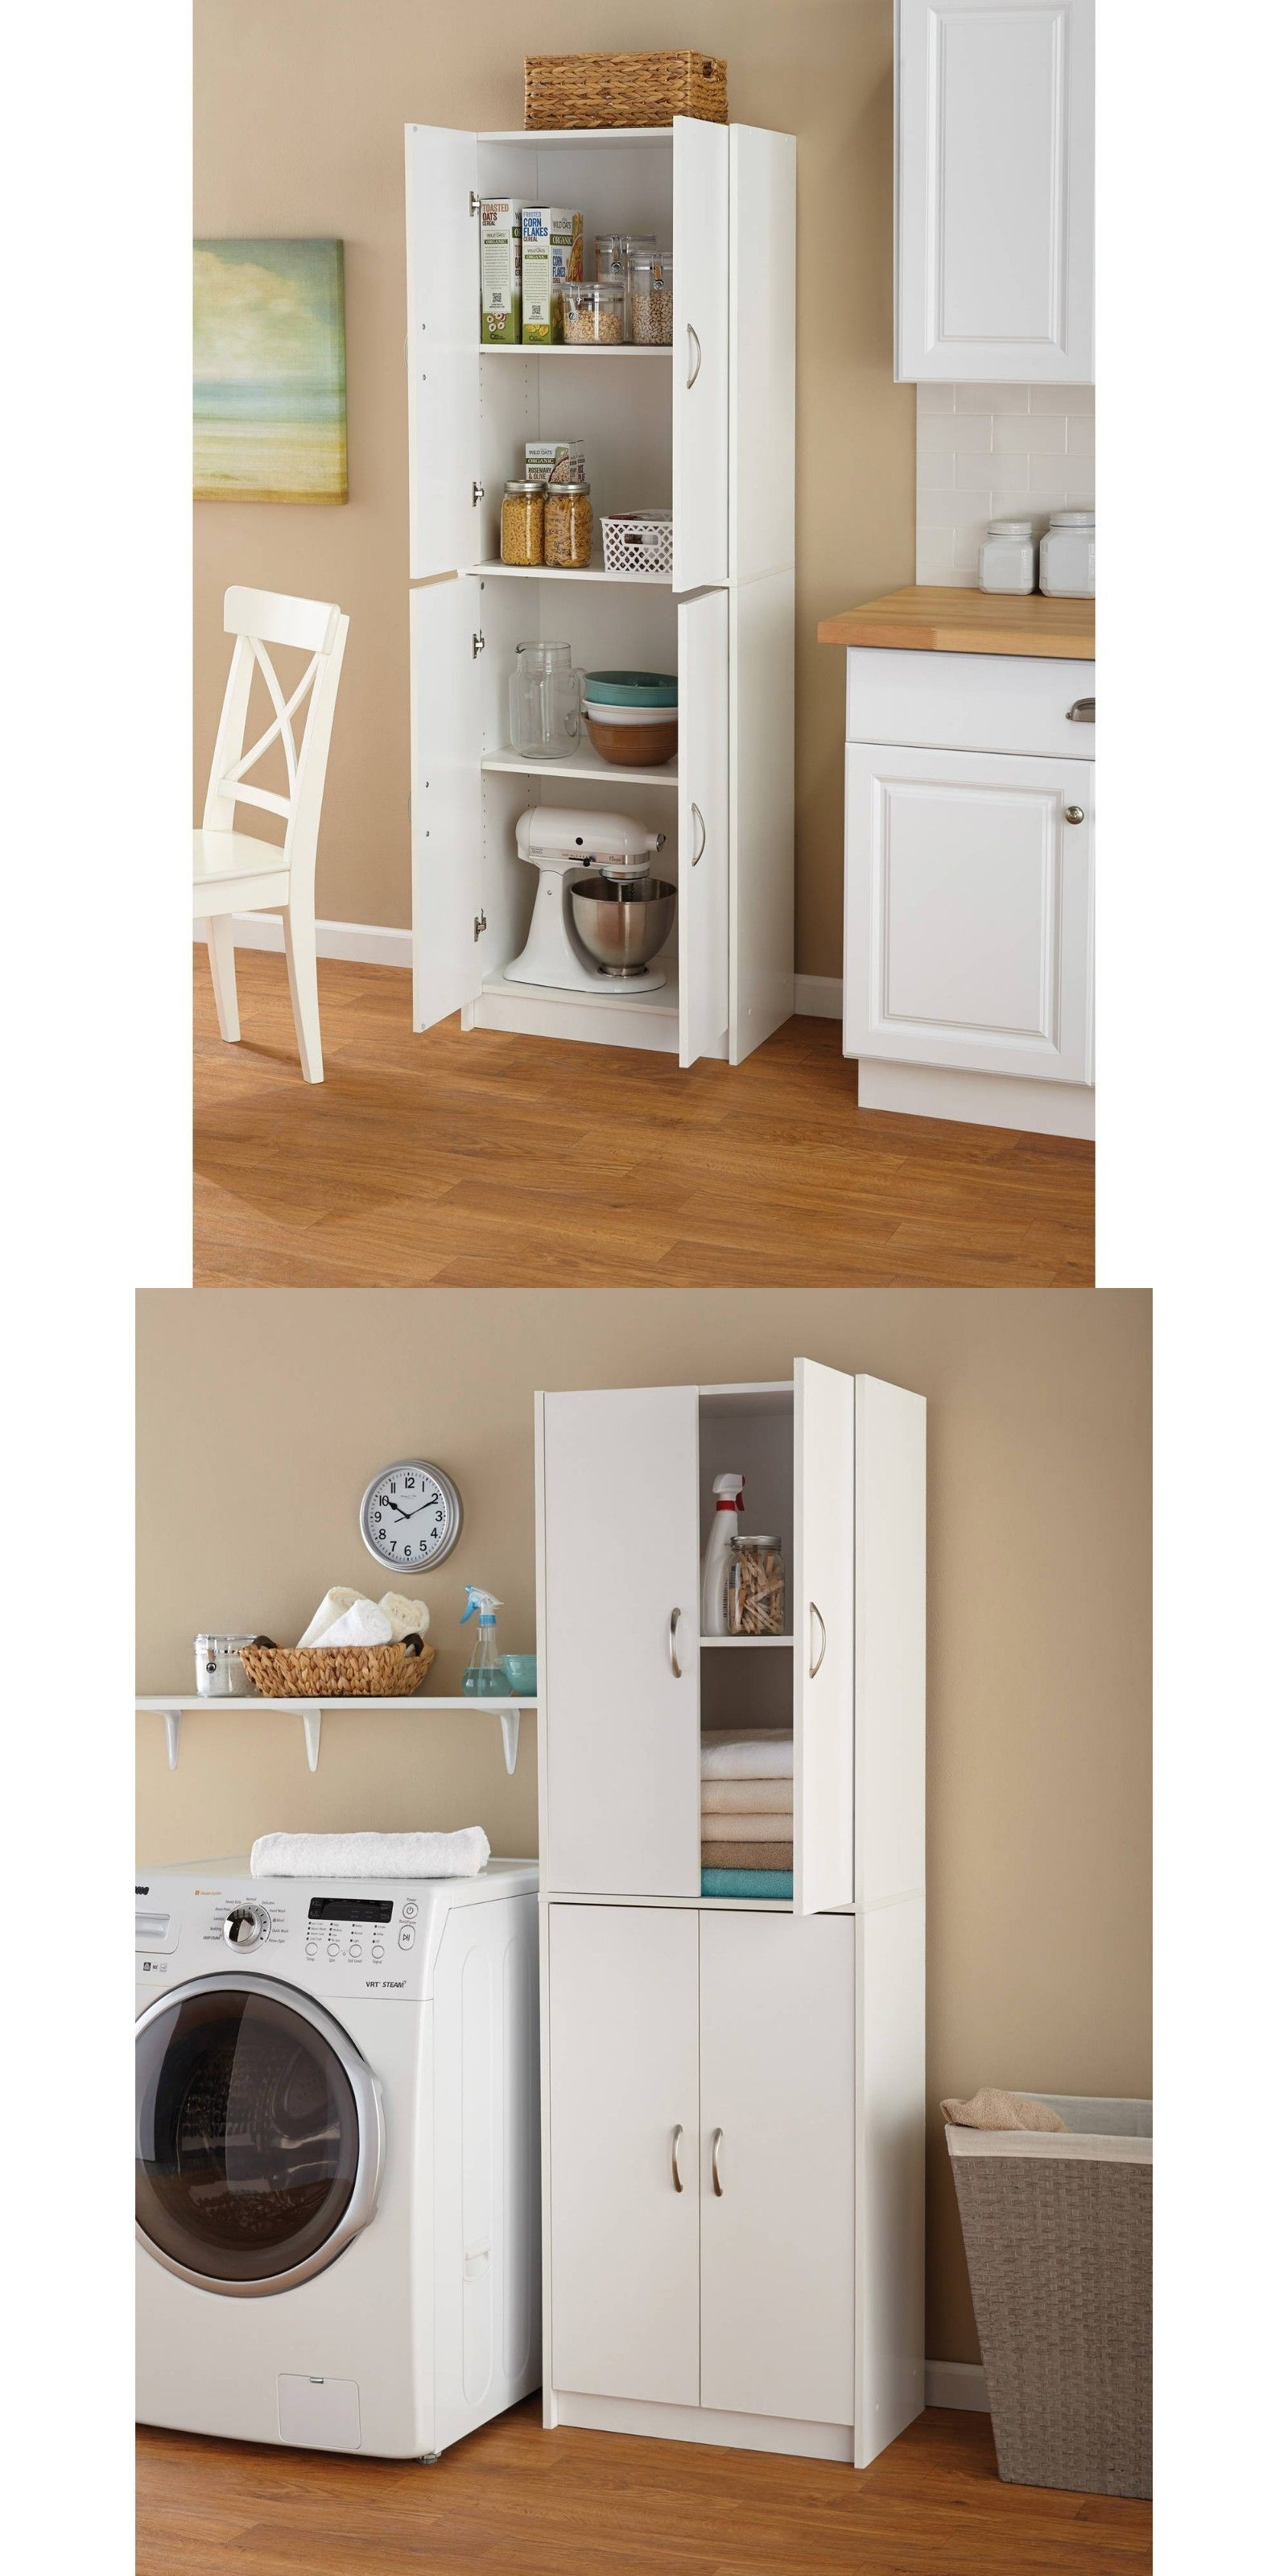 Cabinets And Cupboards 20487 Tall Kitchen Pantry Cabinet Freestanding Shelf Wh Pantry Storage Cabinet Kitchen Storage Solutions Kitchen Pantry Storage Cabinet